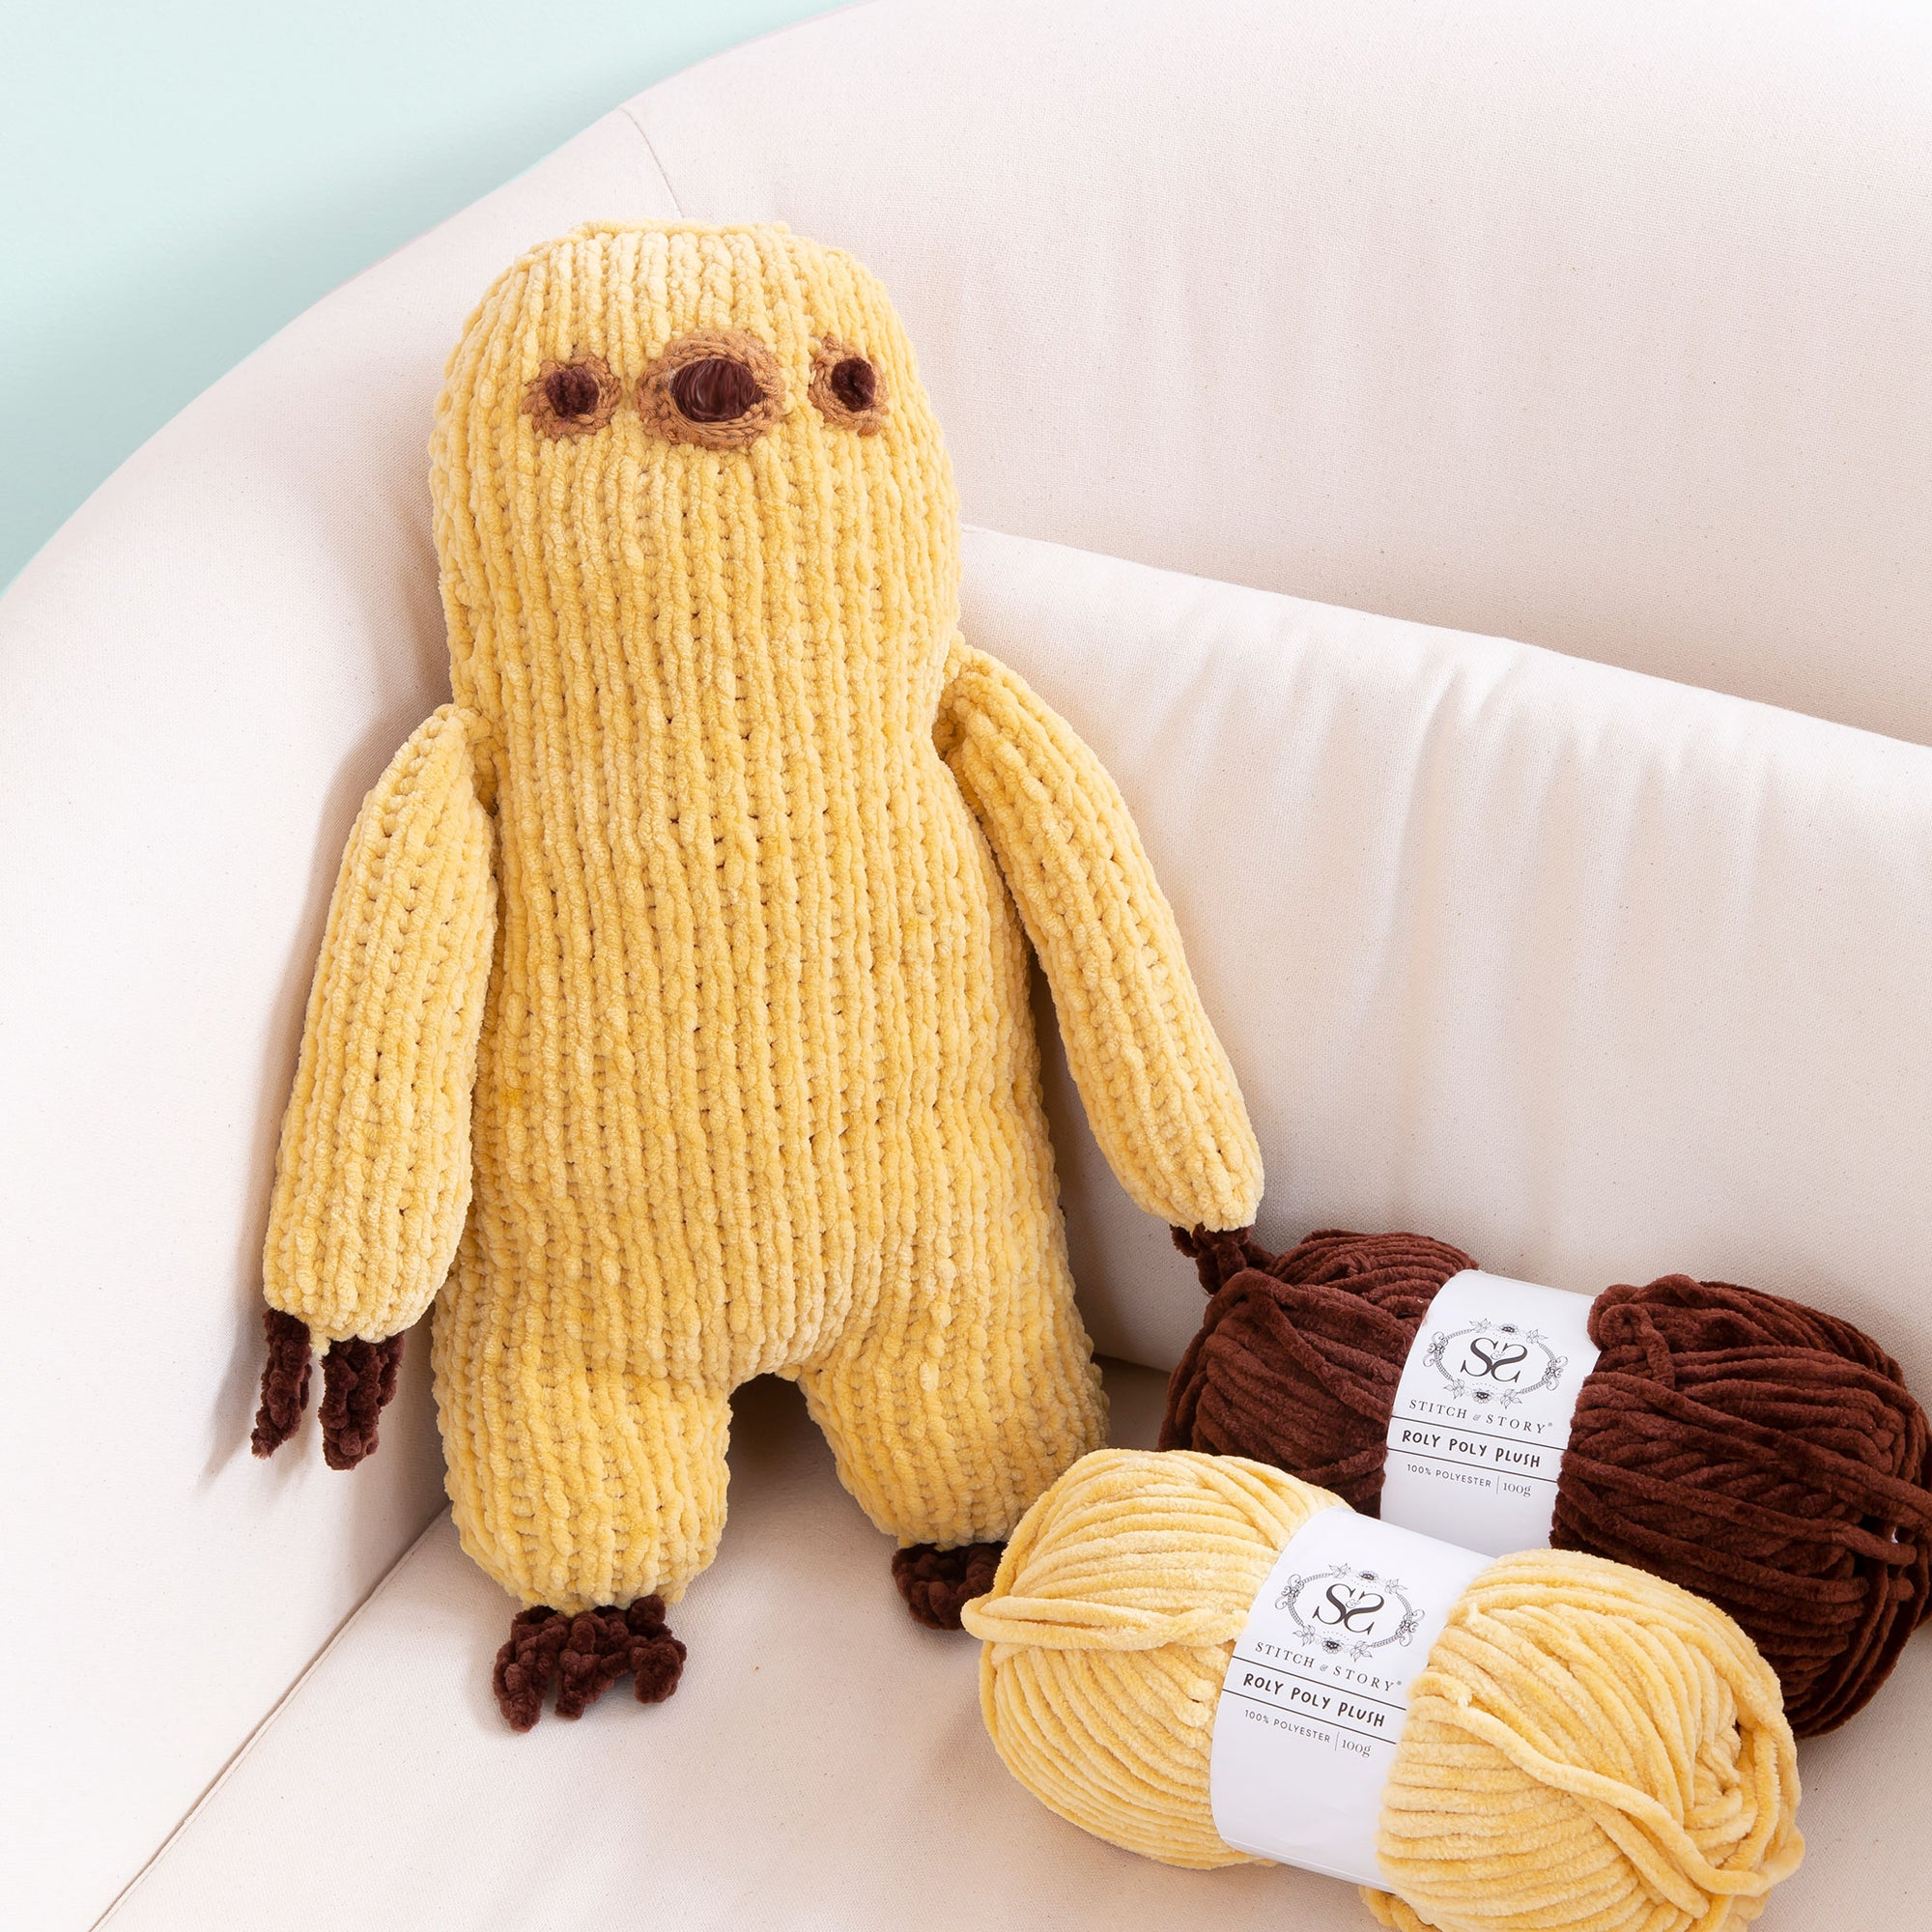 Pusheen: Sloth Knitting Kit